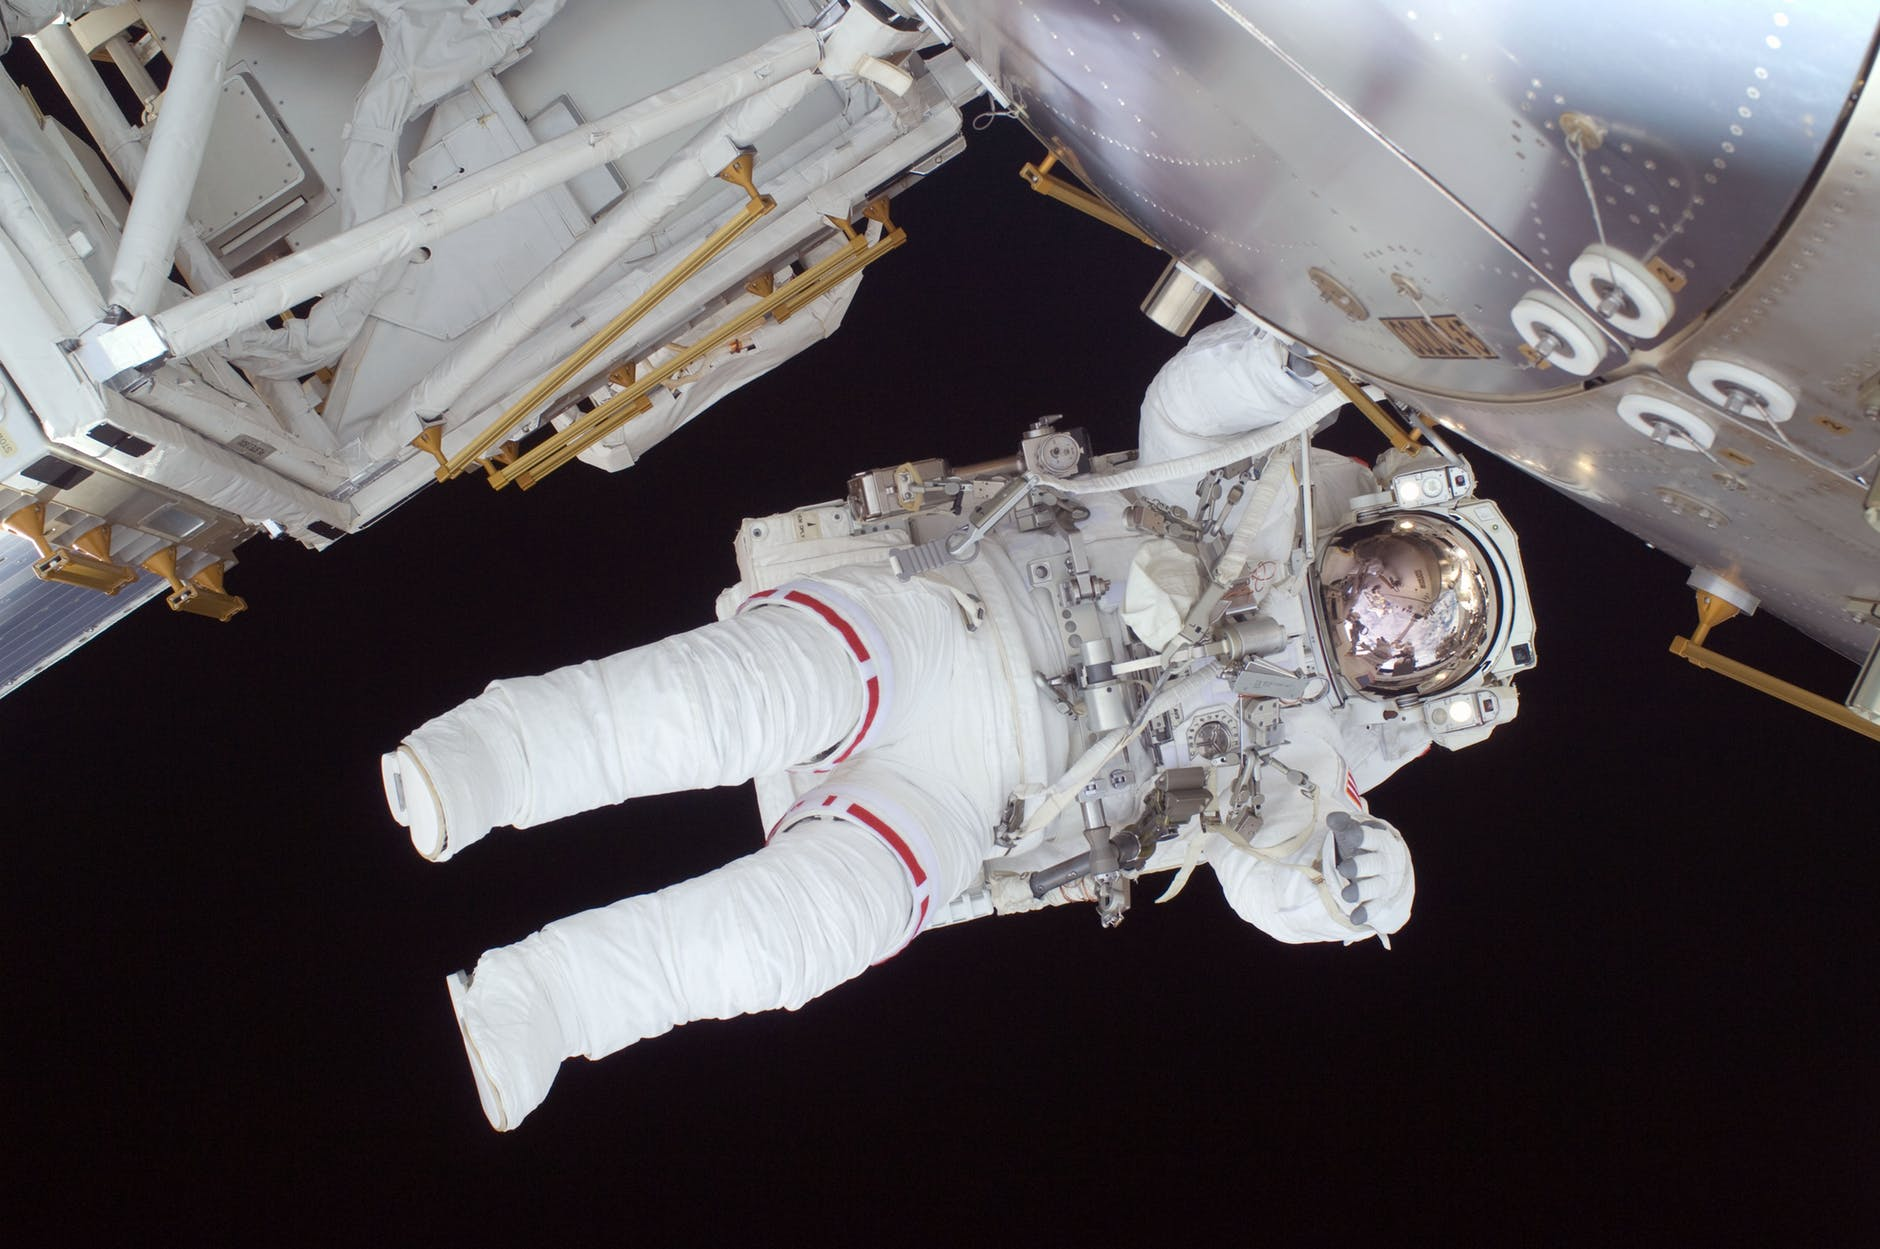 astronaut-spacewalk-space-shuttle-discovery-39651.jpeg